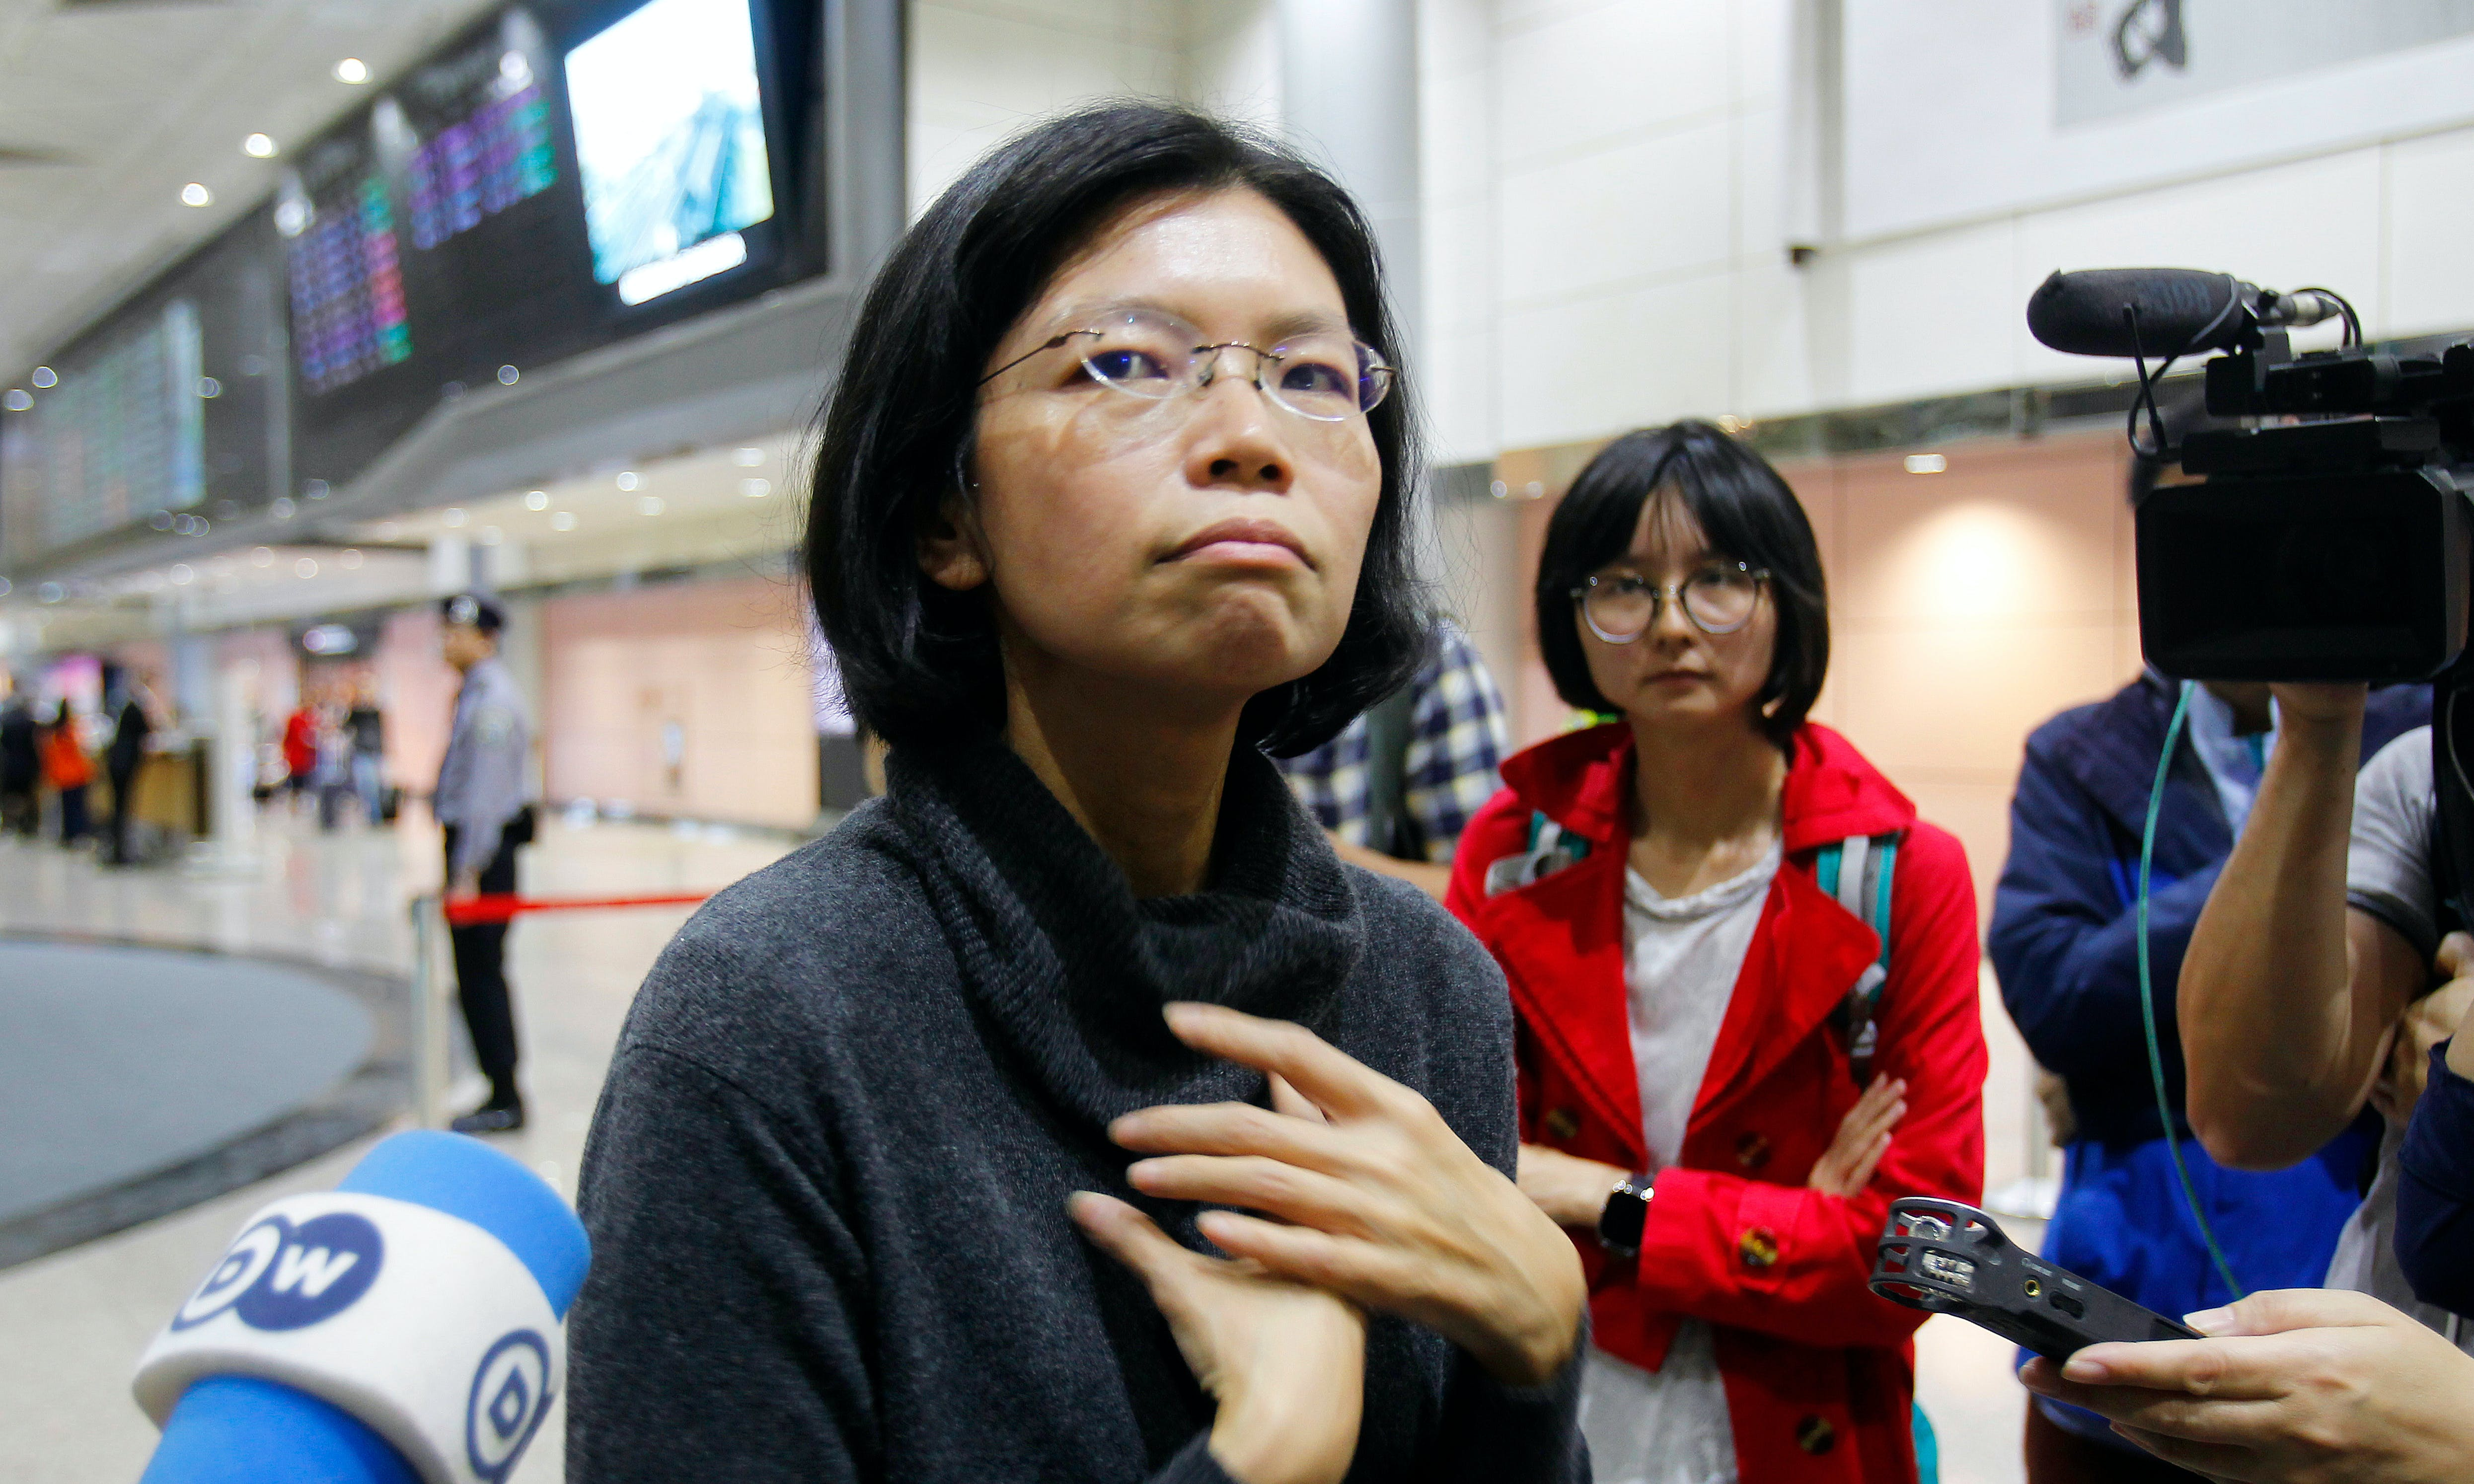 Taiwan News: Wife of Jailed Activist Asks China to Allow Third Party Prison Visits